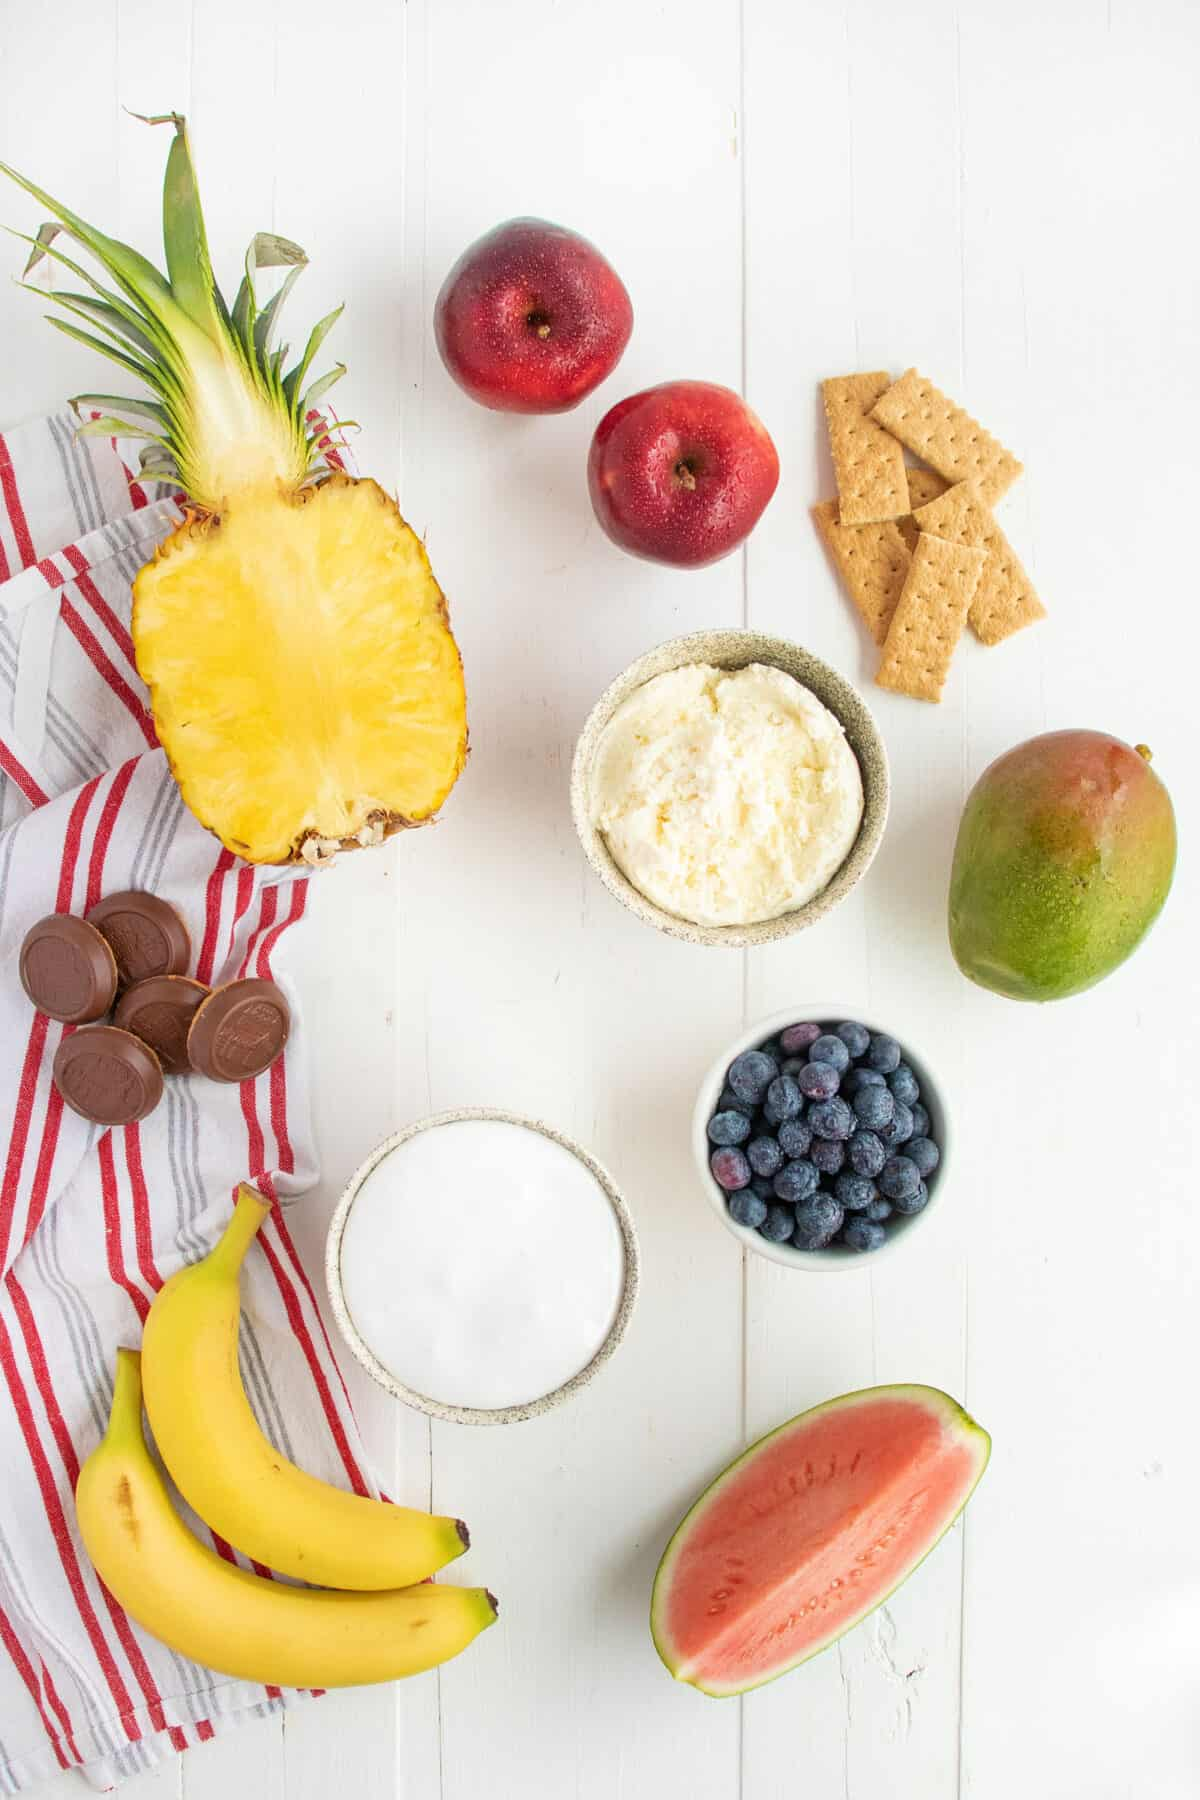 ingredients for cream cheese dip and fruit